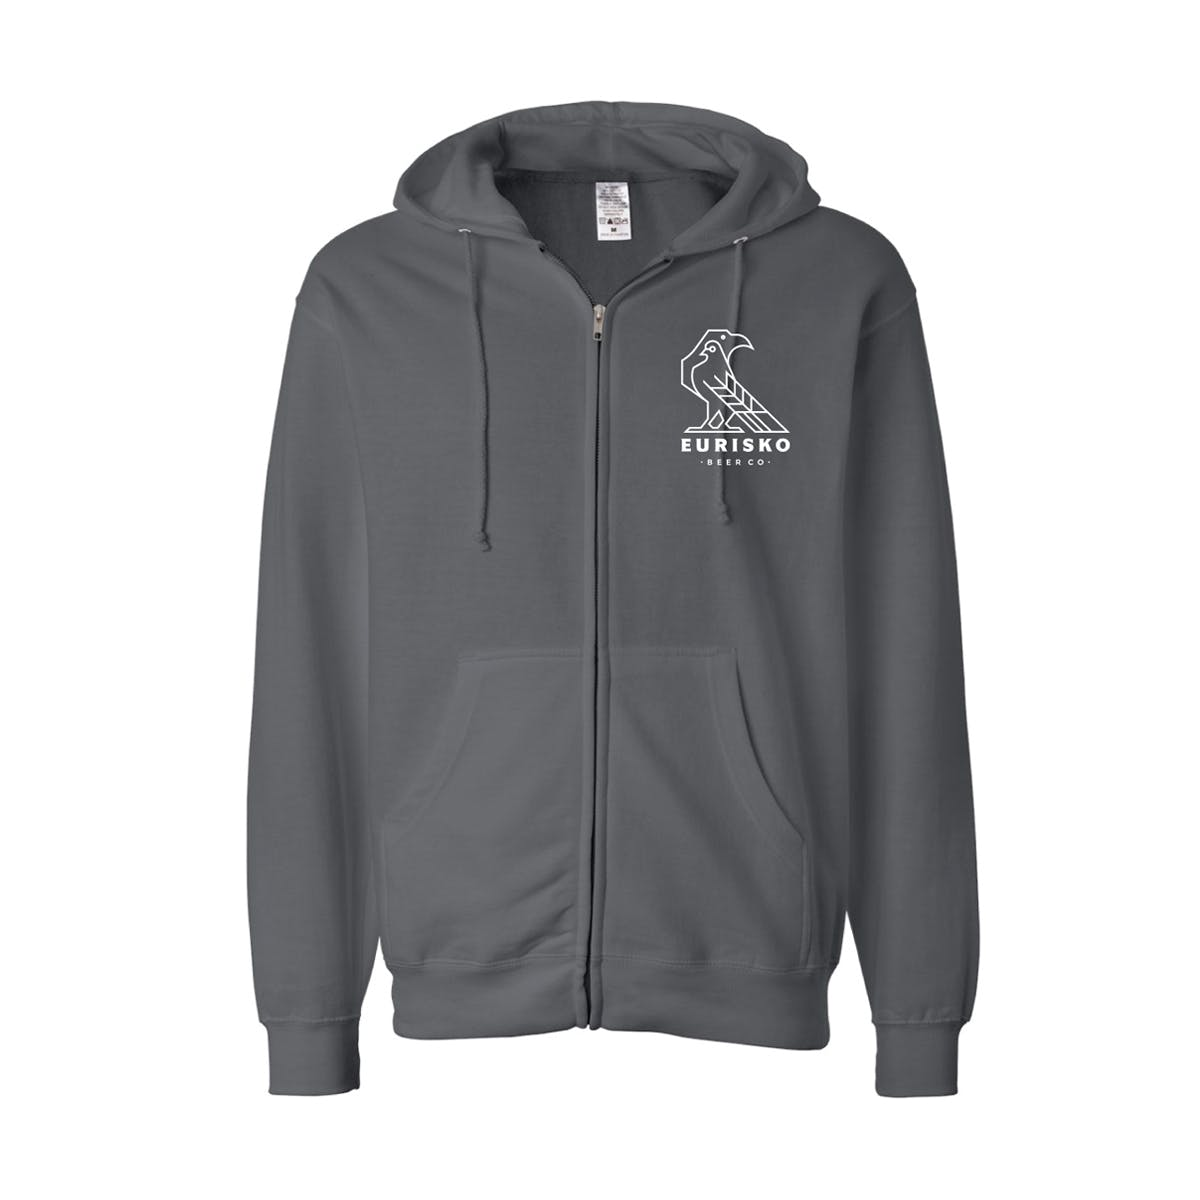 Copy of hoodie-logo-gray-front